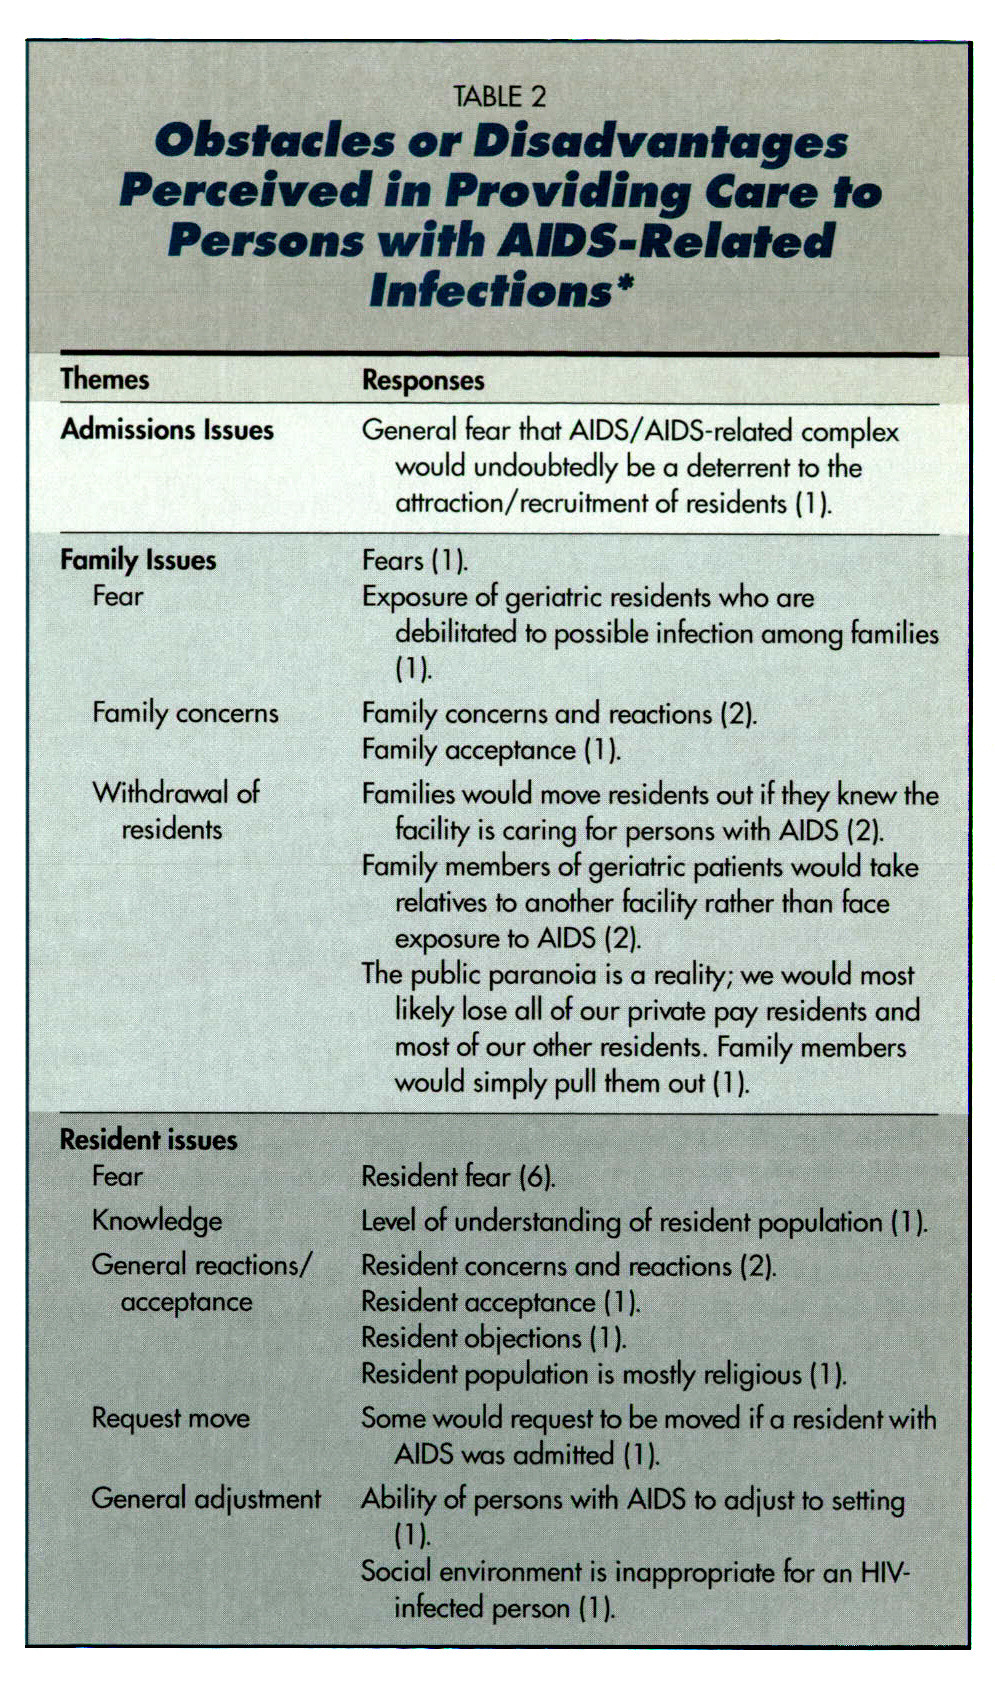 TABLE 2Obstacles or Disadvantages Perceived in Providing Care to Persons with AIDS-Related Infections*